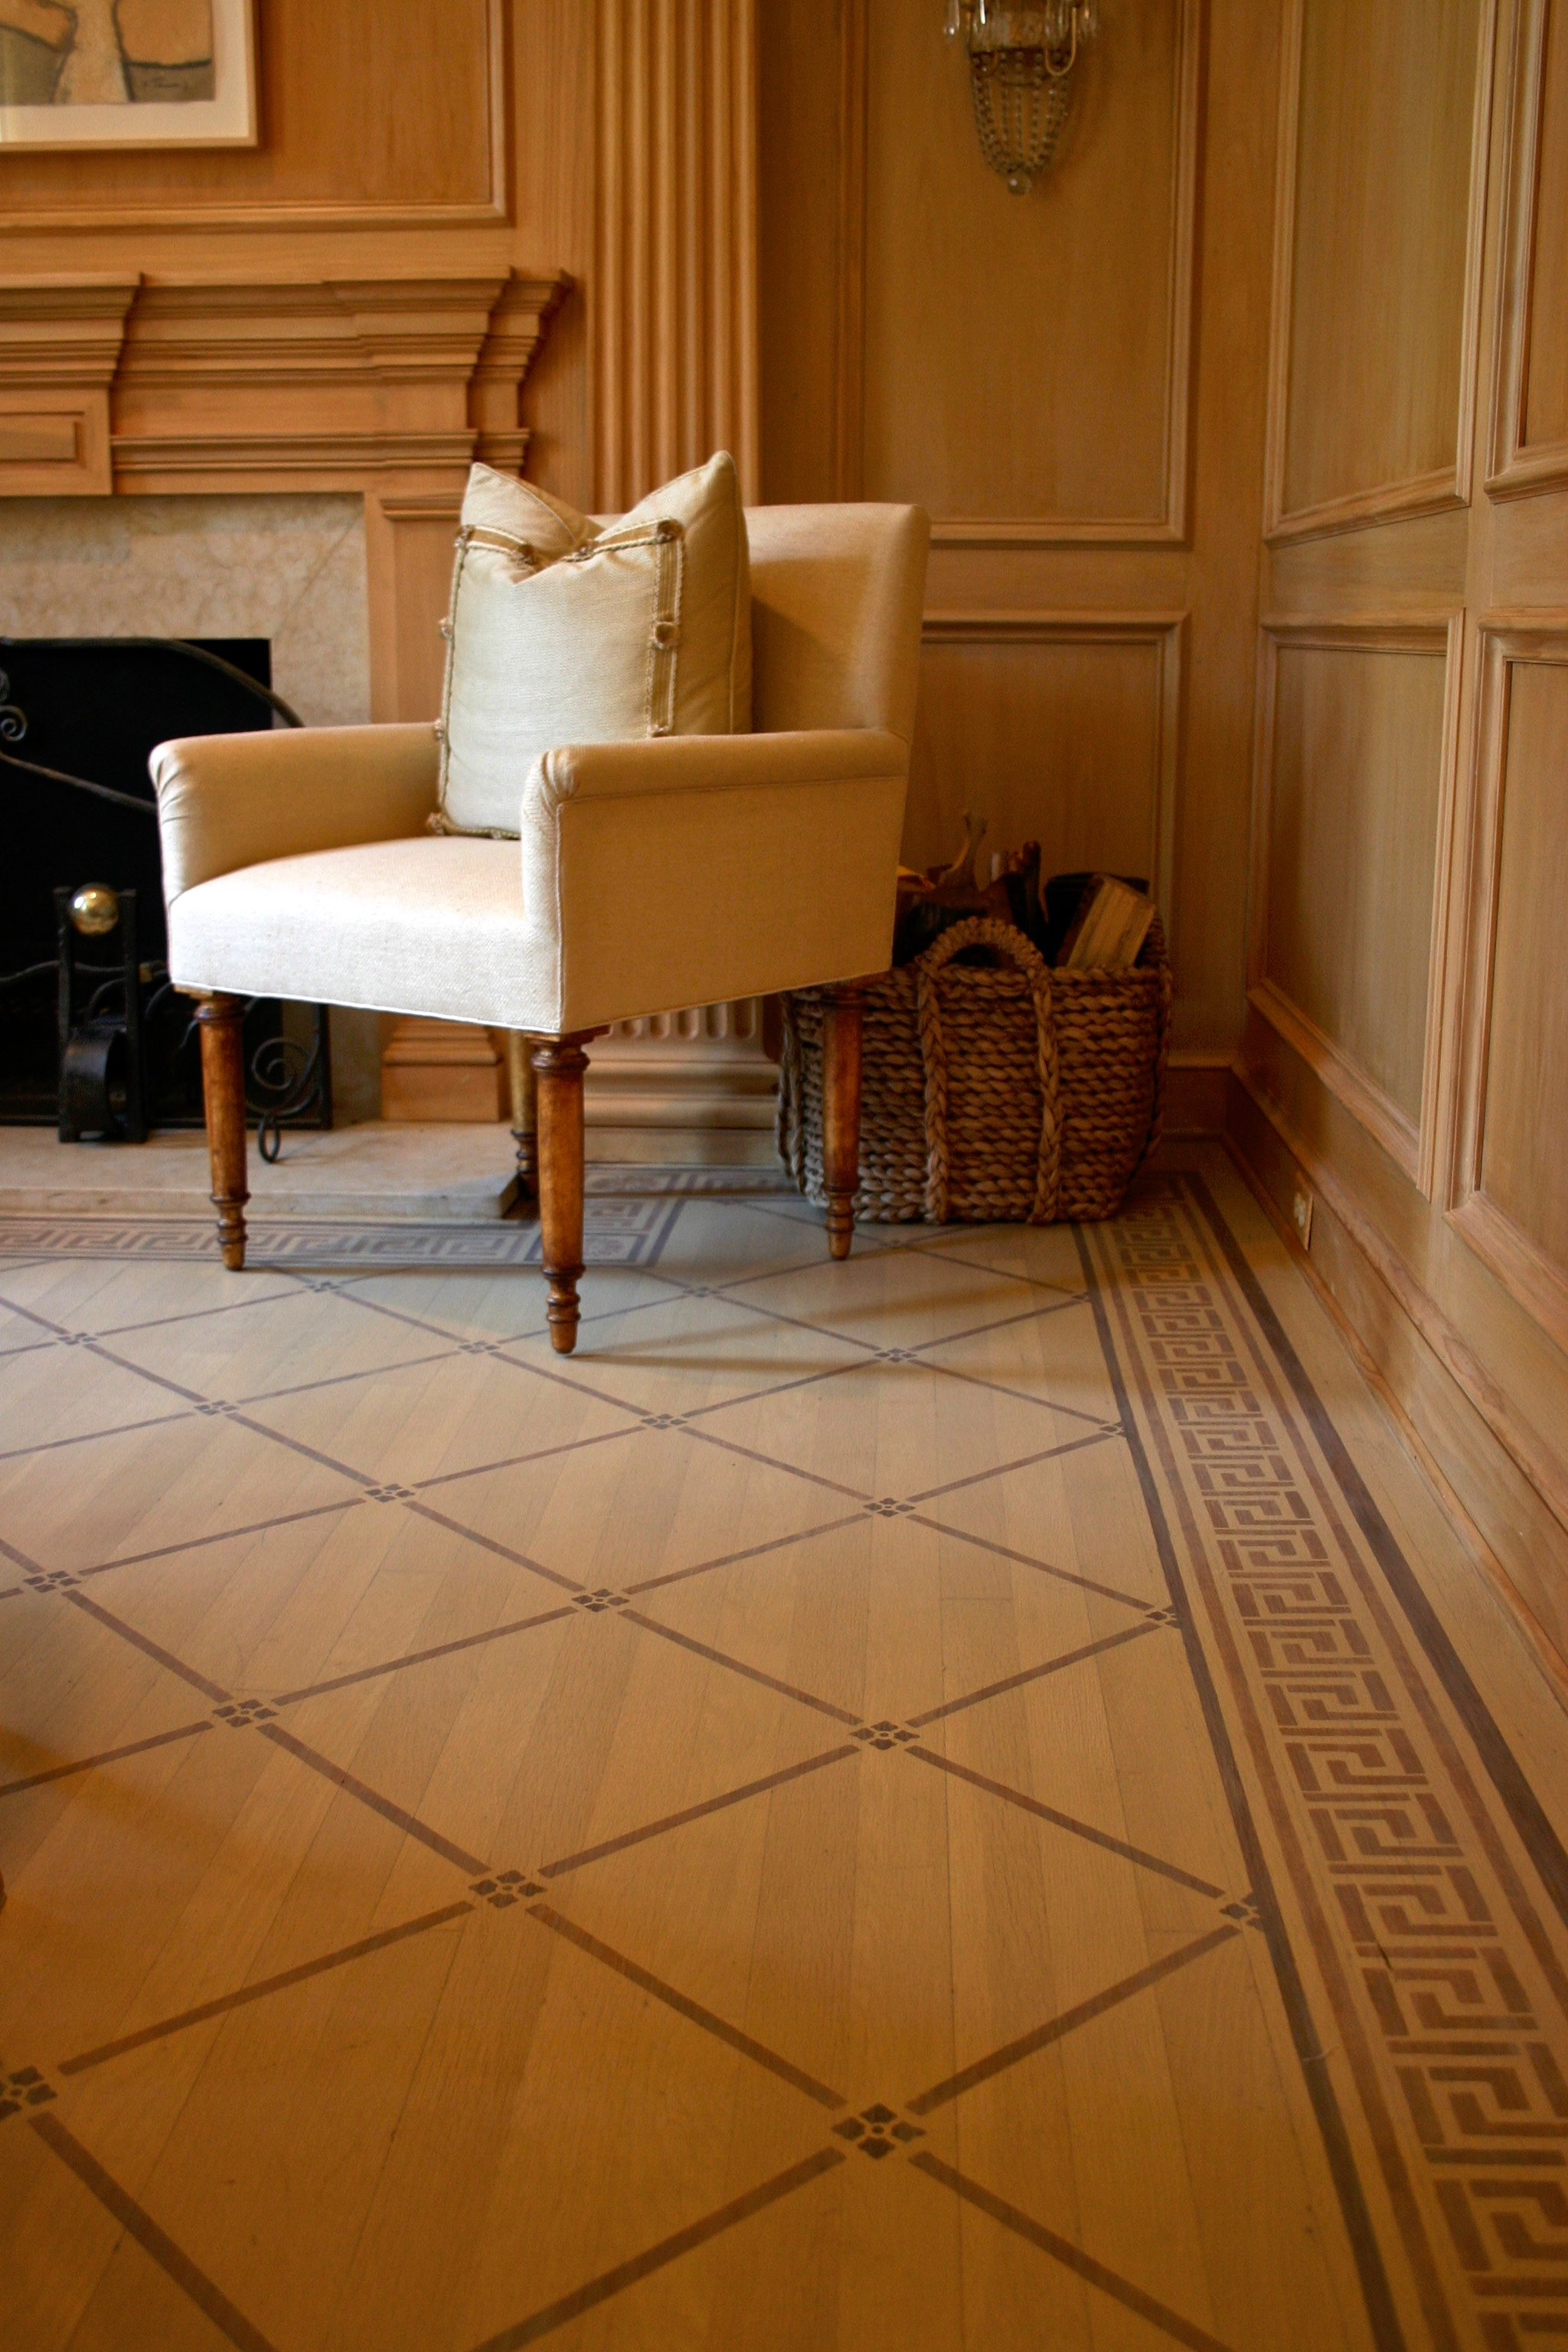 Stencilled floor with border